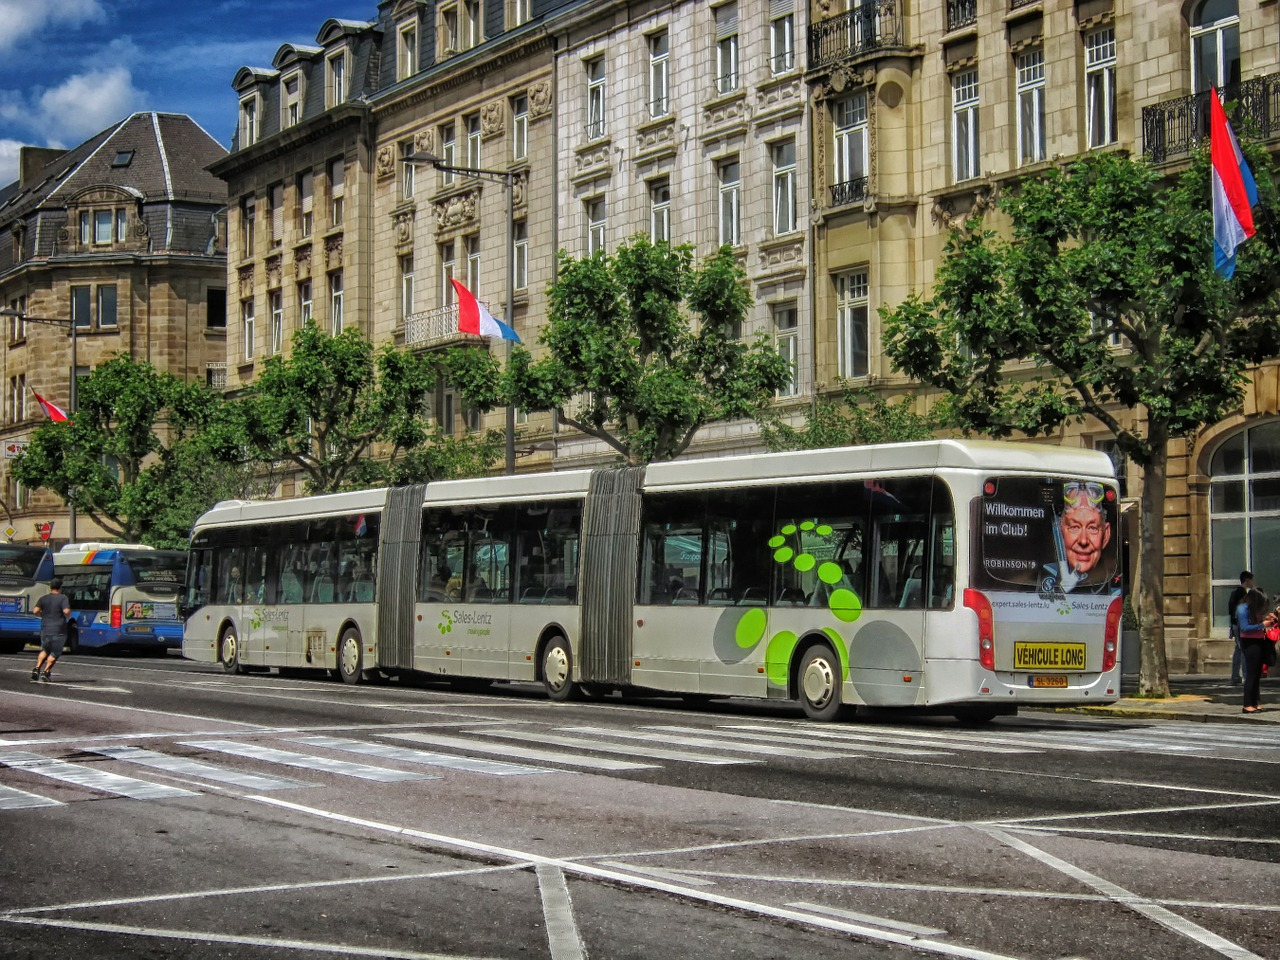 luxembourg-289120_1280